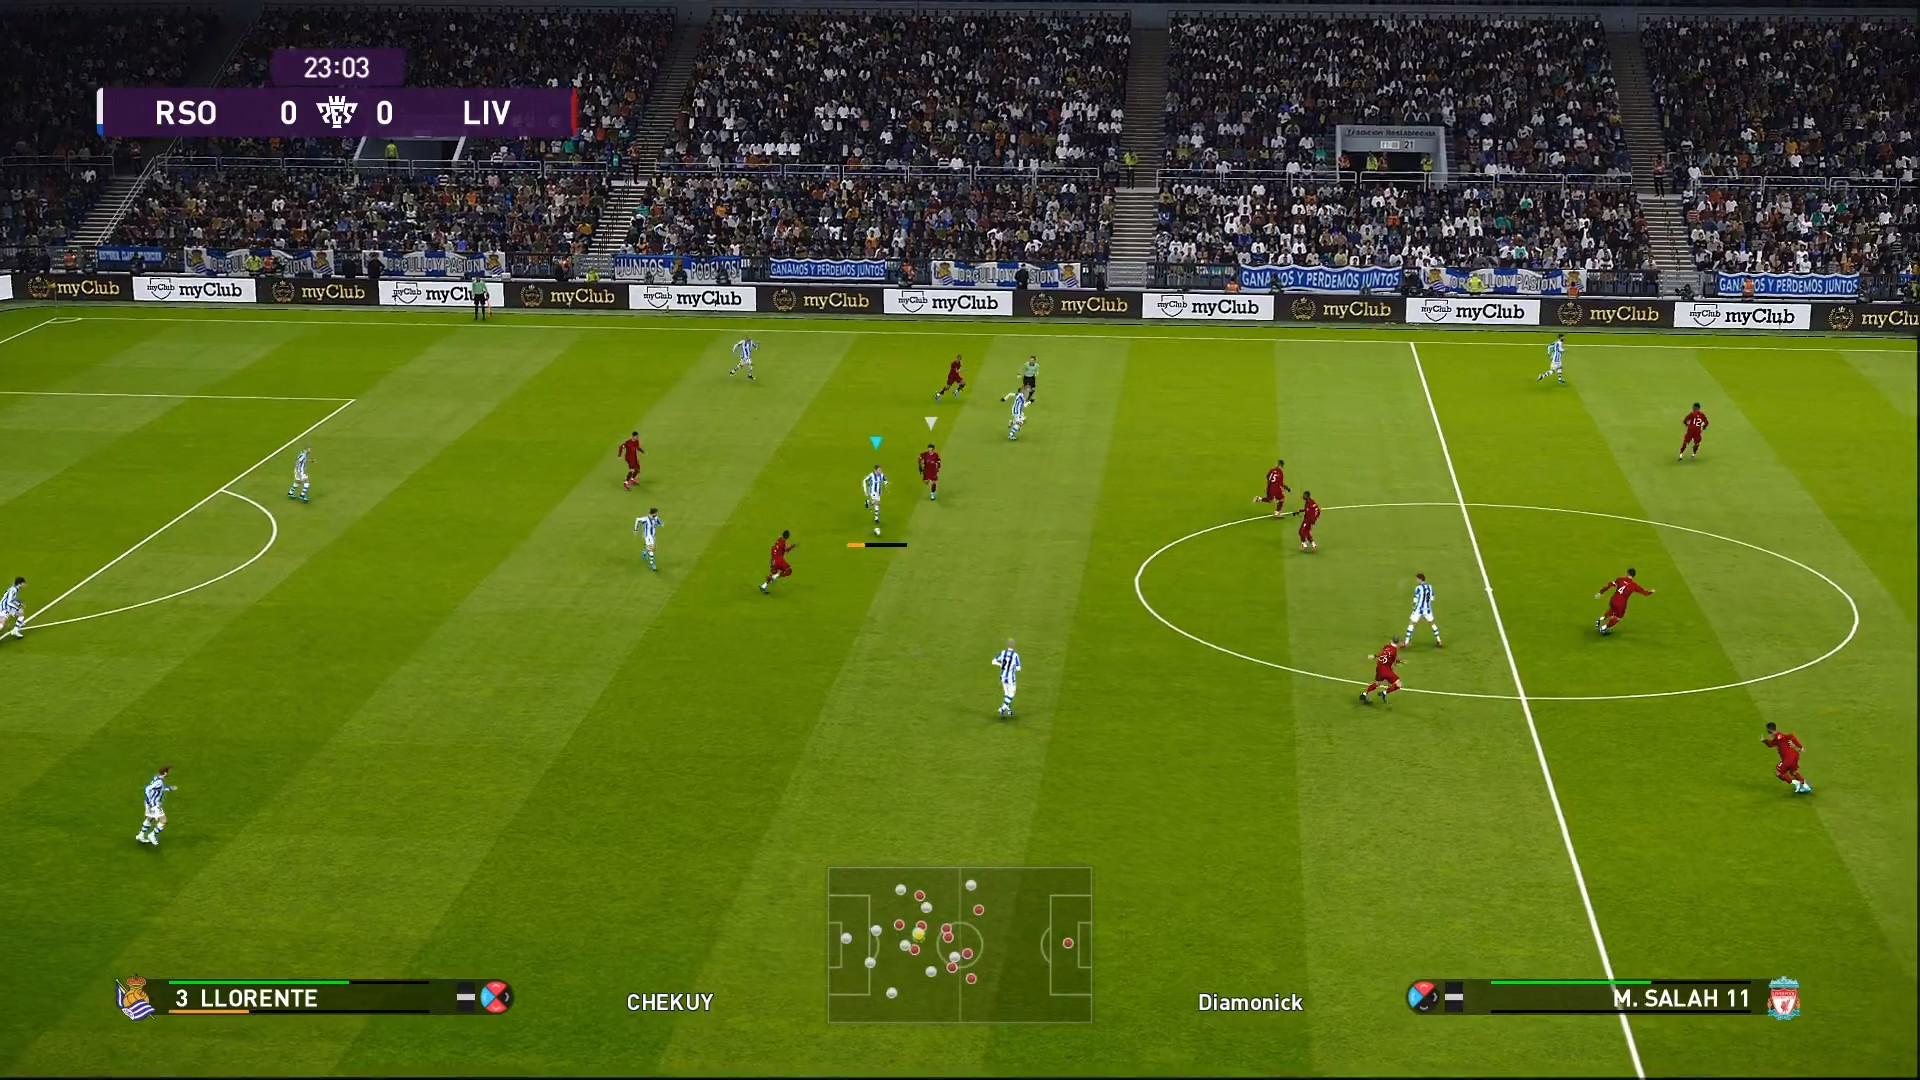 Screenshot 1 - eFootball PES 2021 Lite